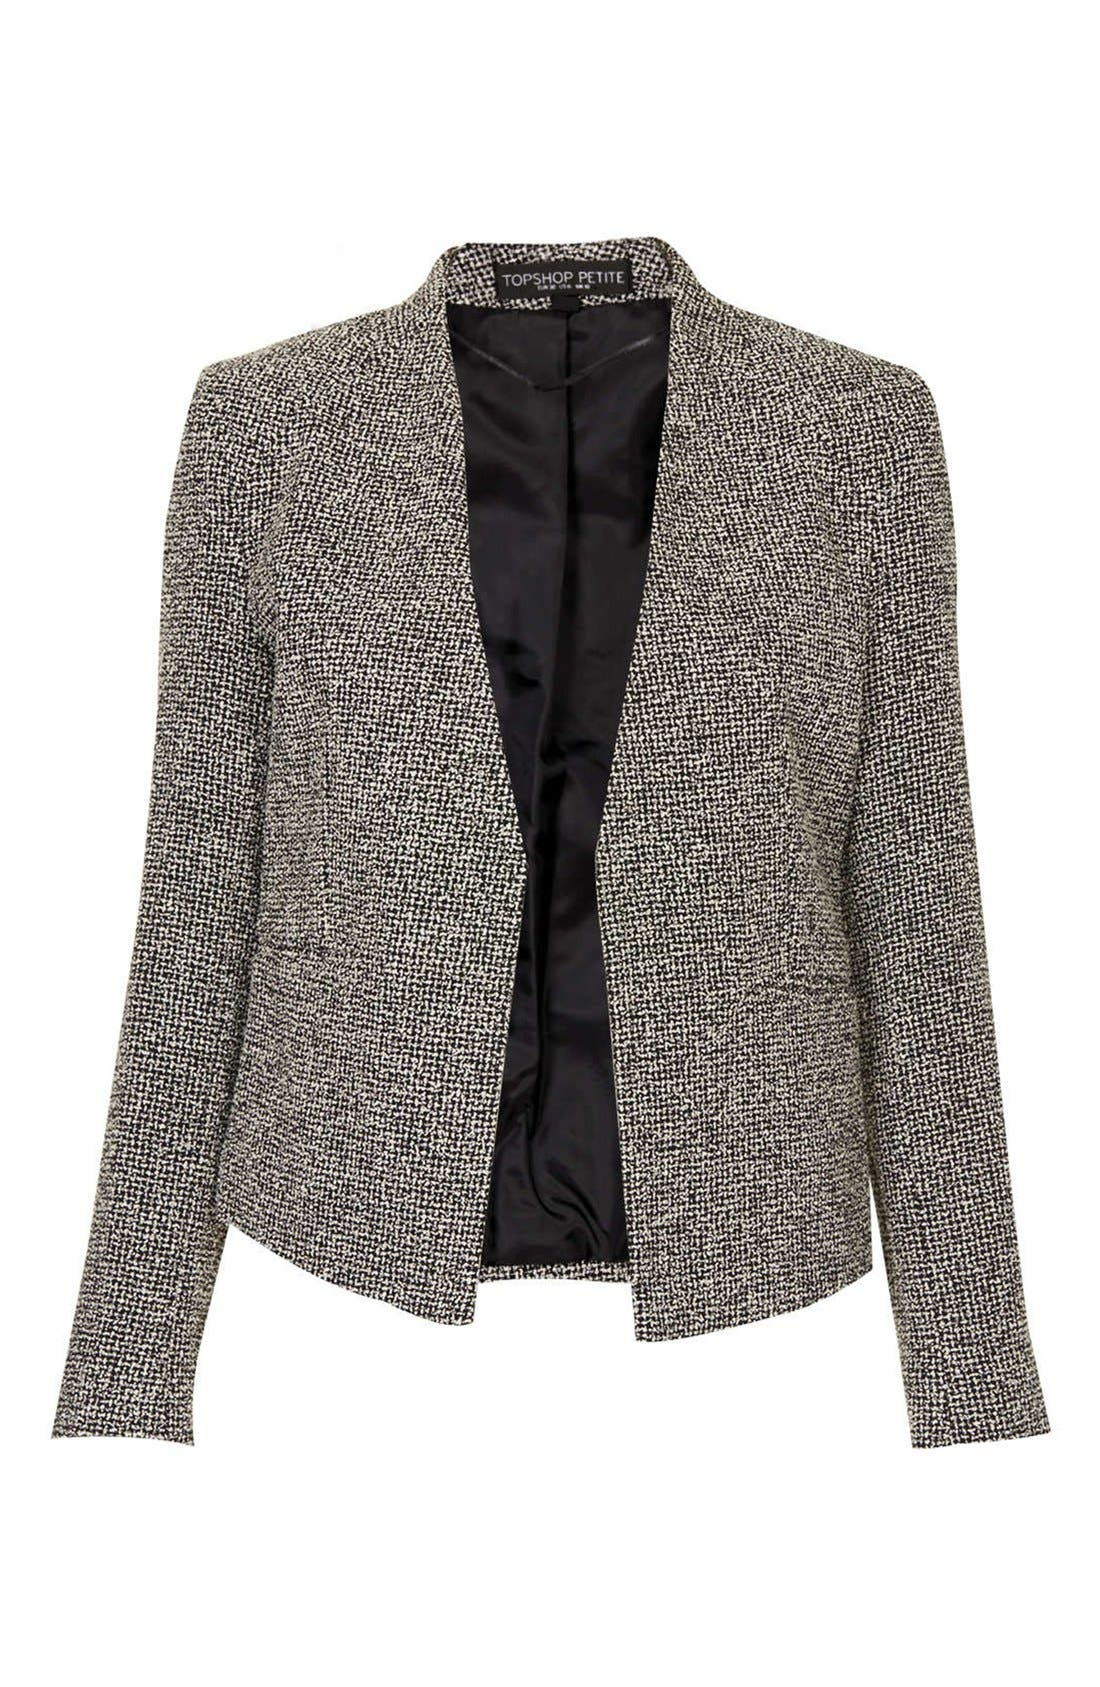 Alternate Image 3  - Topshop 'Bonnie' Collarless Textured Blazer (Petite)